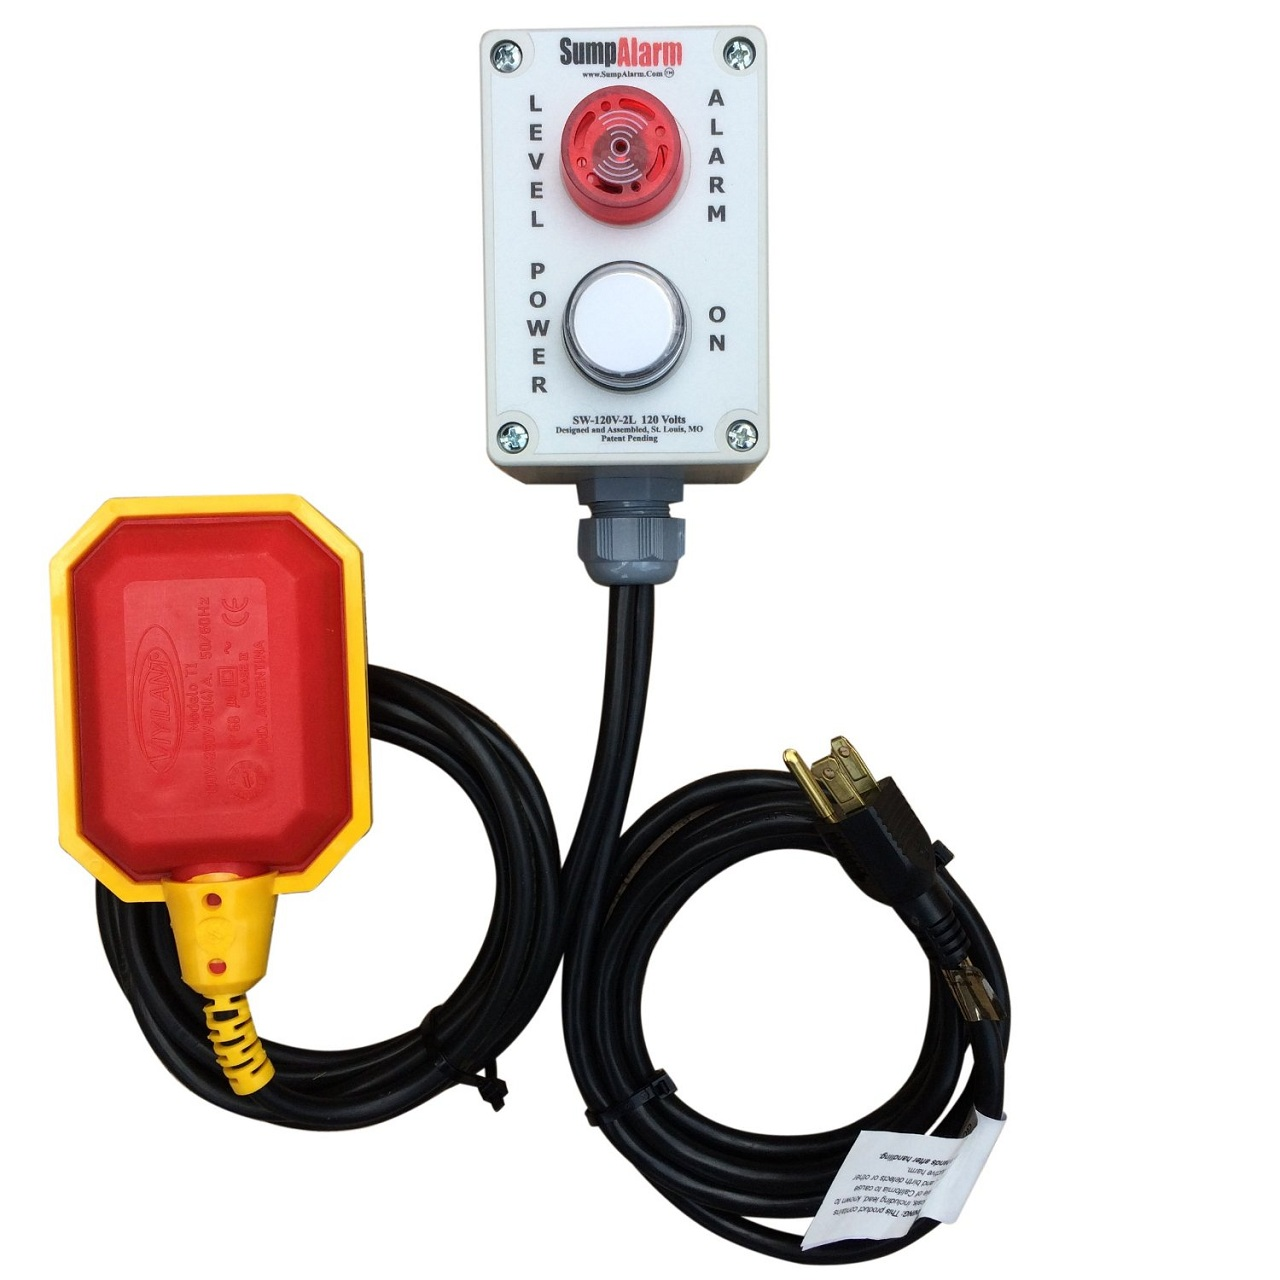 Sump Pumps Comparison Table Liberty Pump Wiring Diagram Top 5 Best Selling Alarms Chart